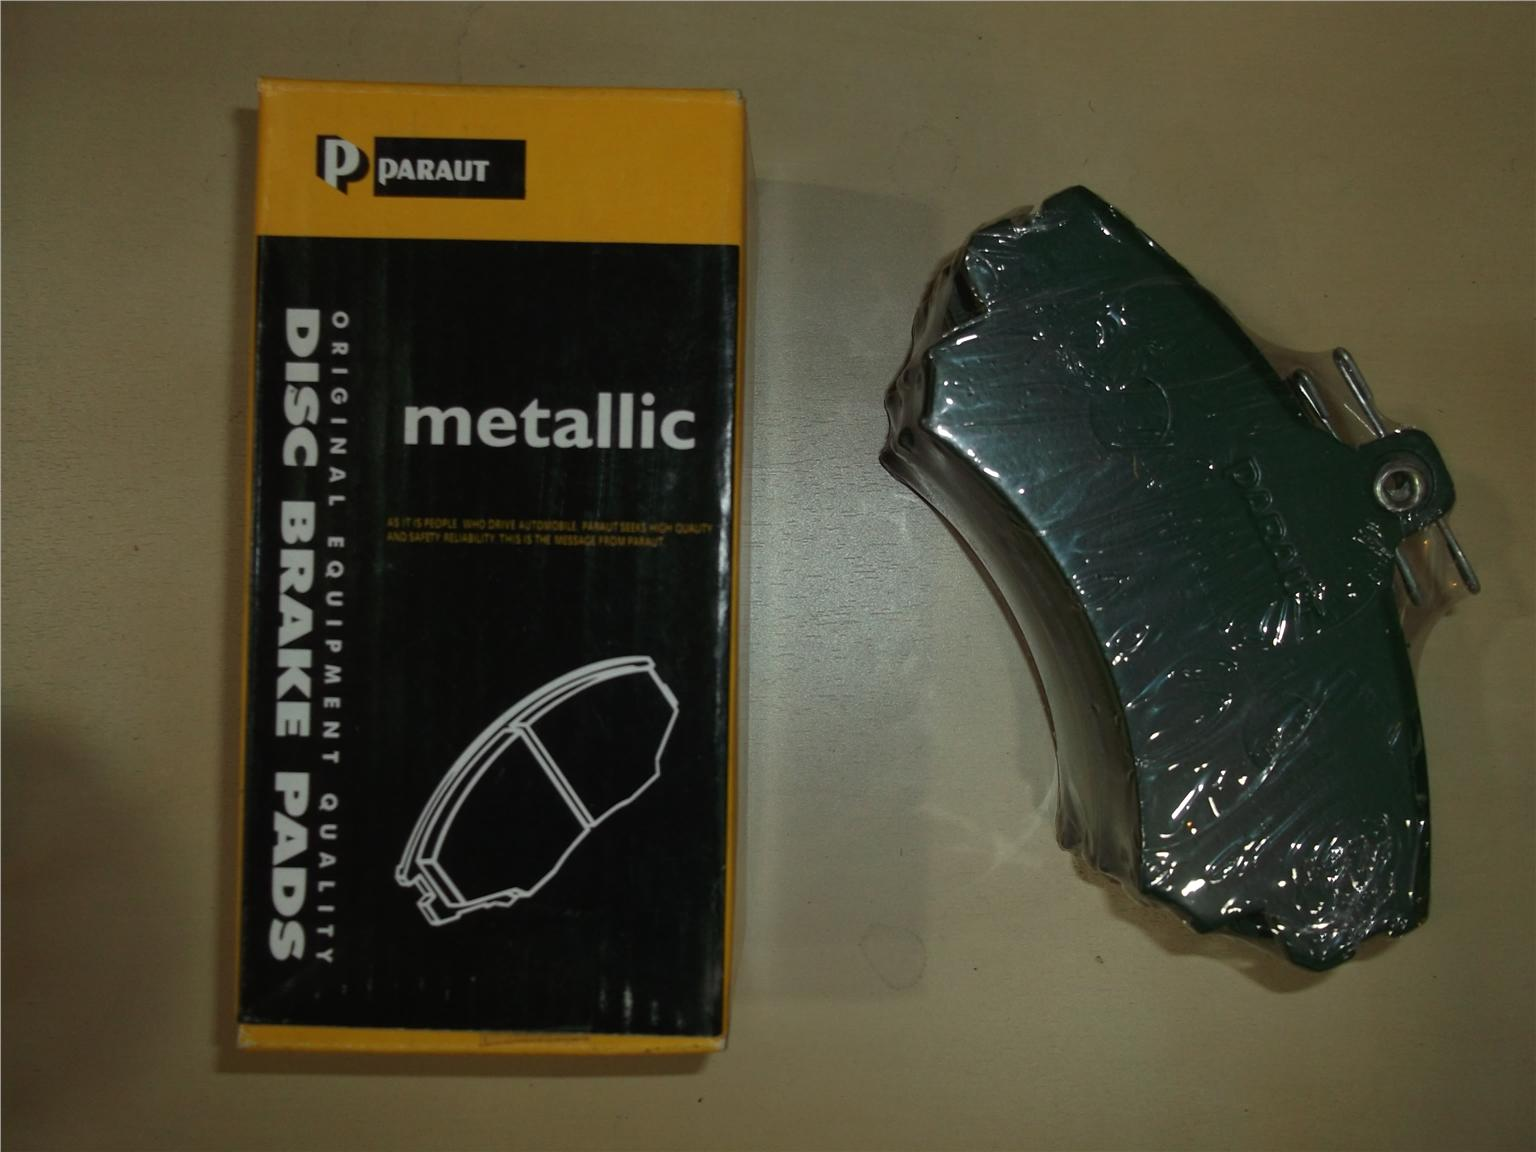 PARAUT METALLIC FRONT BRAKE PAD FOR WAJA, ALZA